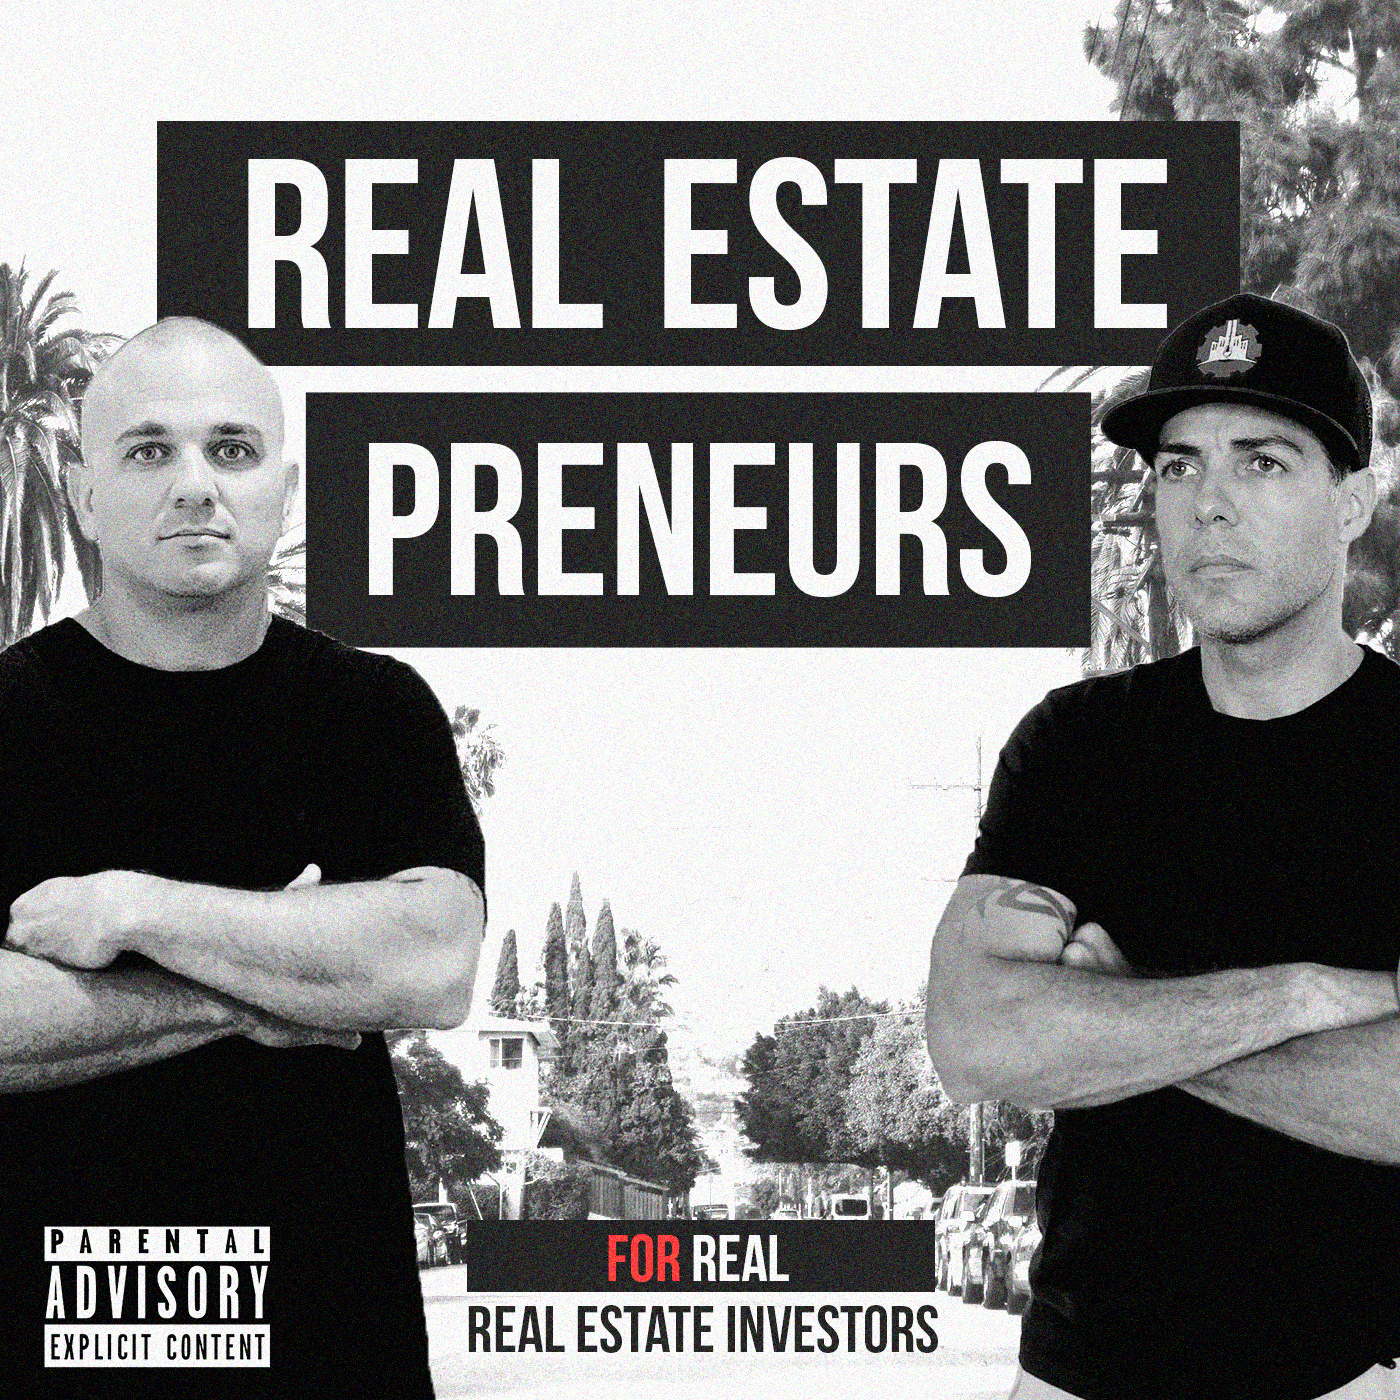 Real Estatepreneurs